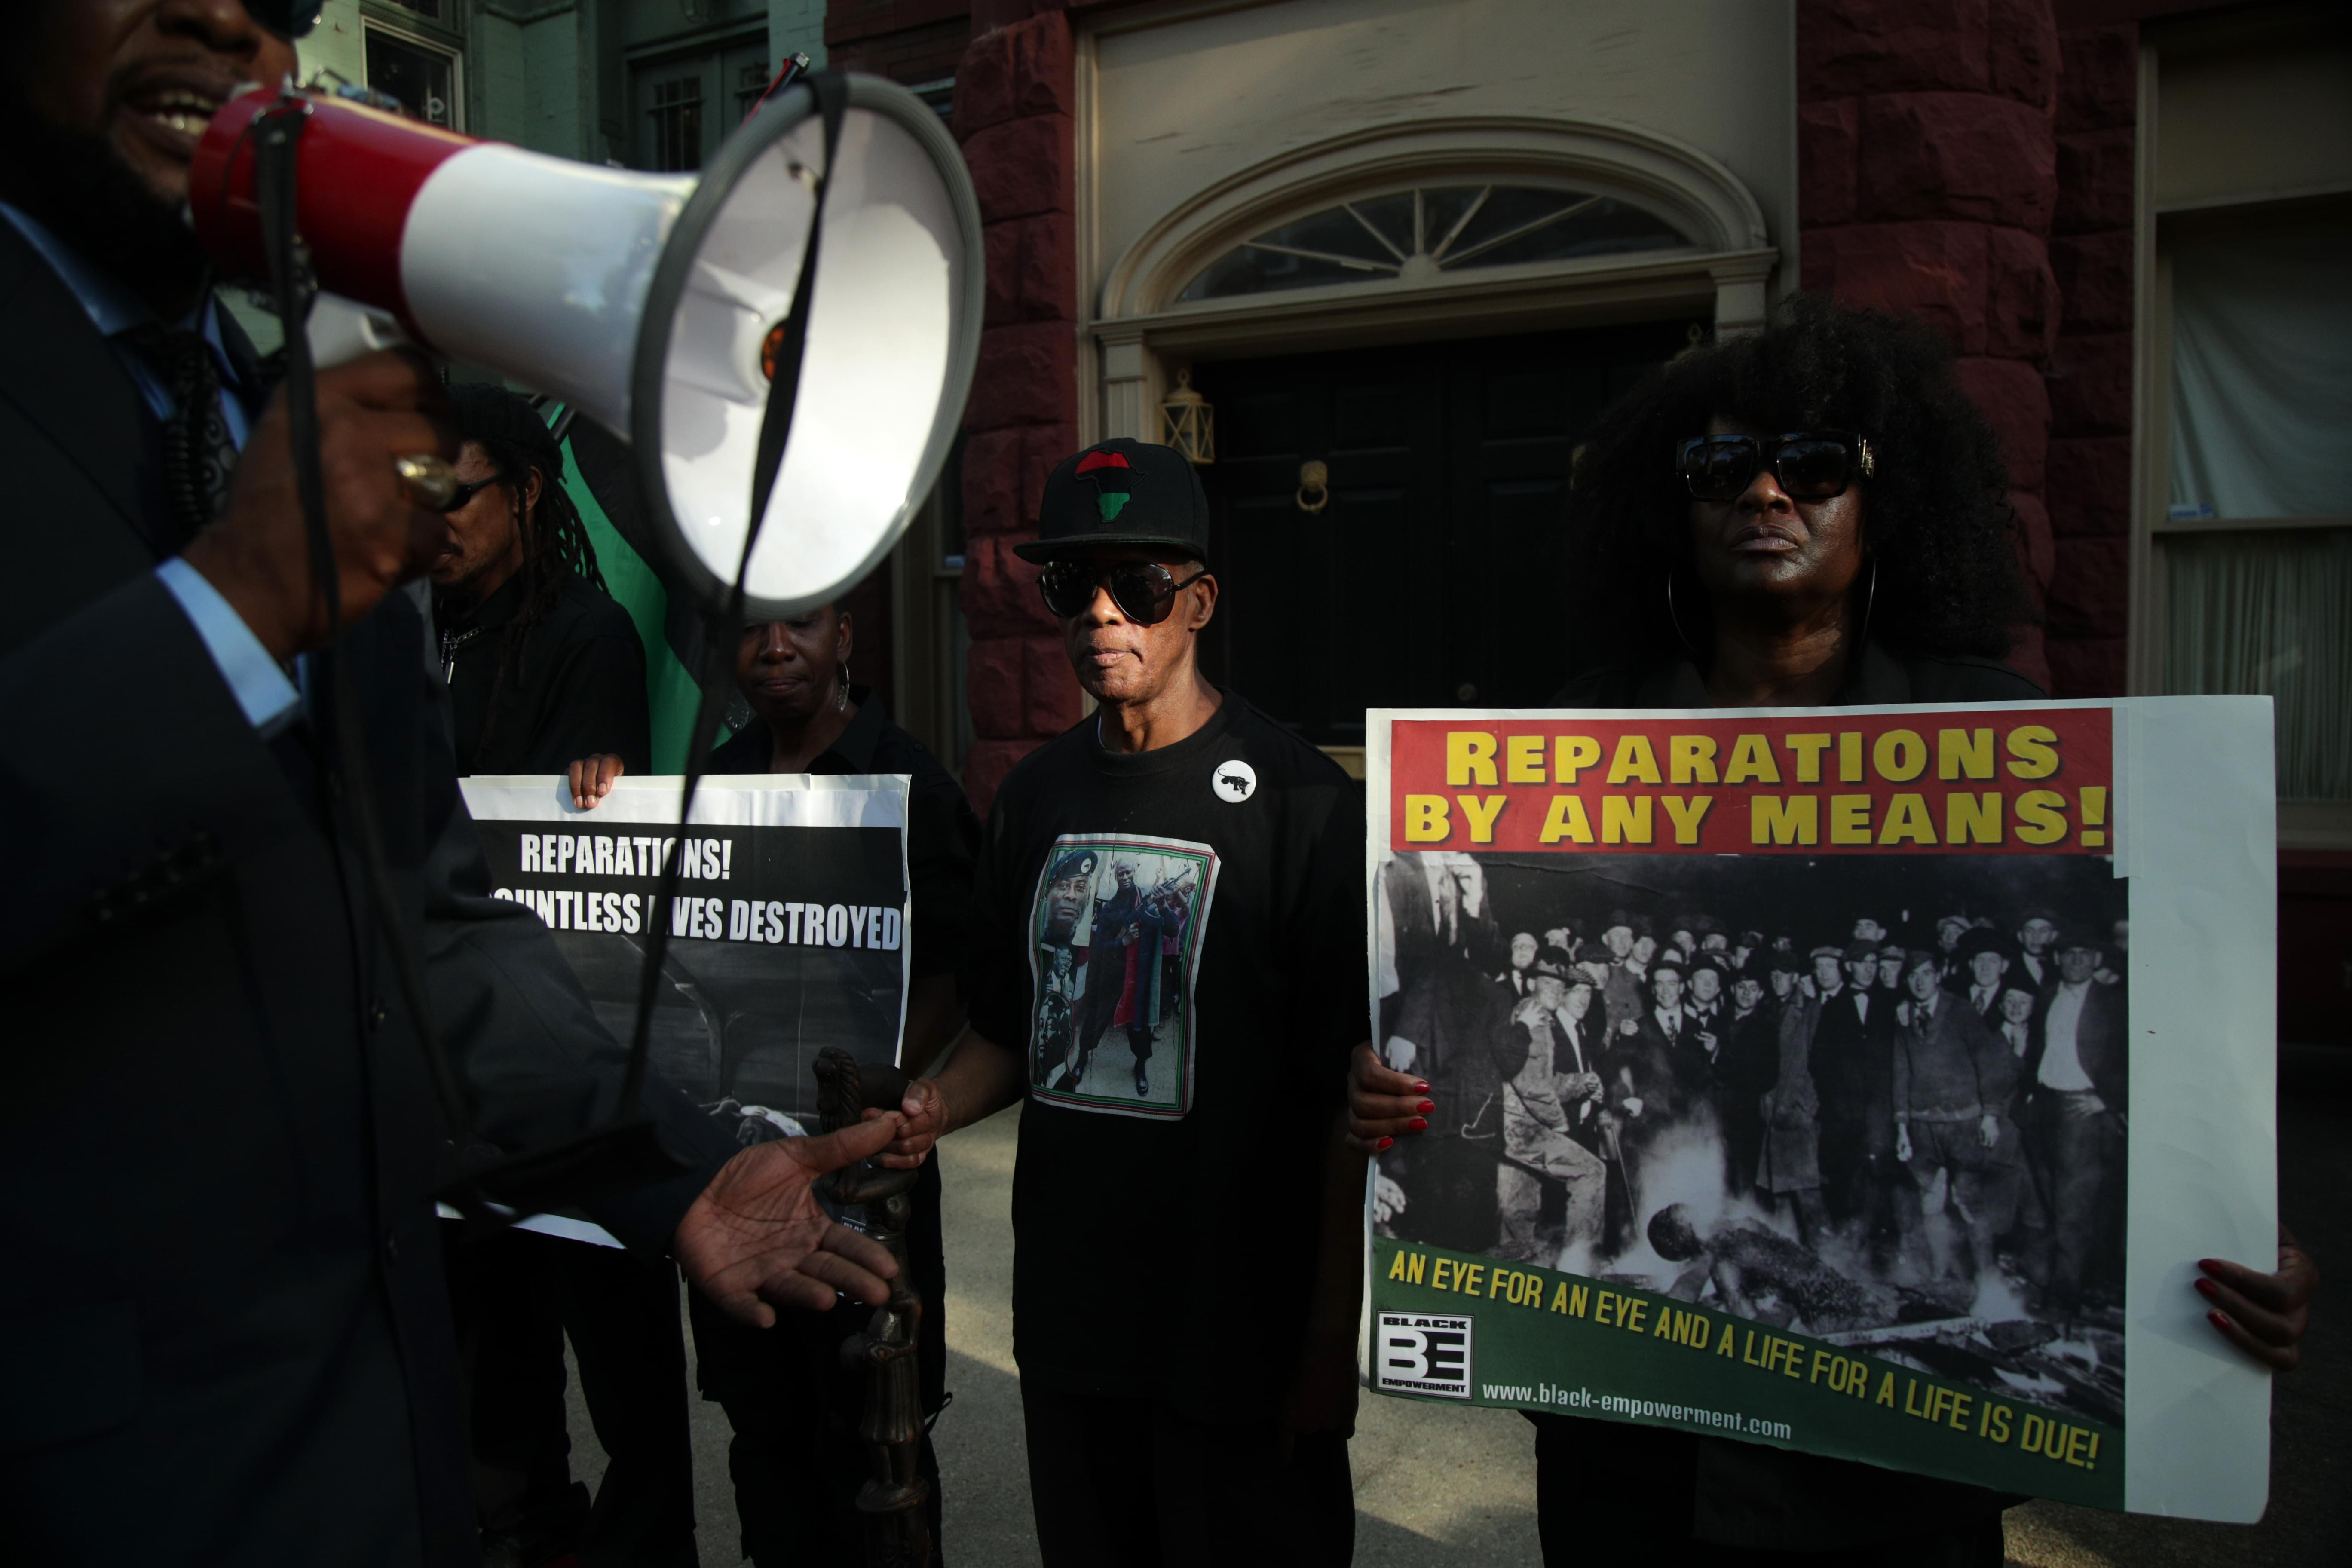 North Carolina City Of Asheville Voted To Approve Reparations For Black Residents